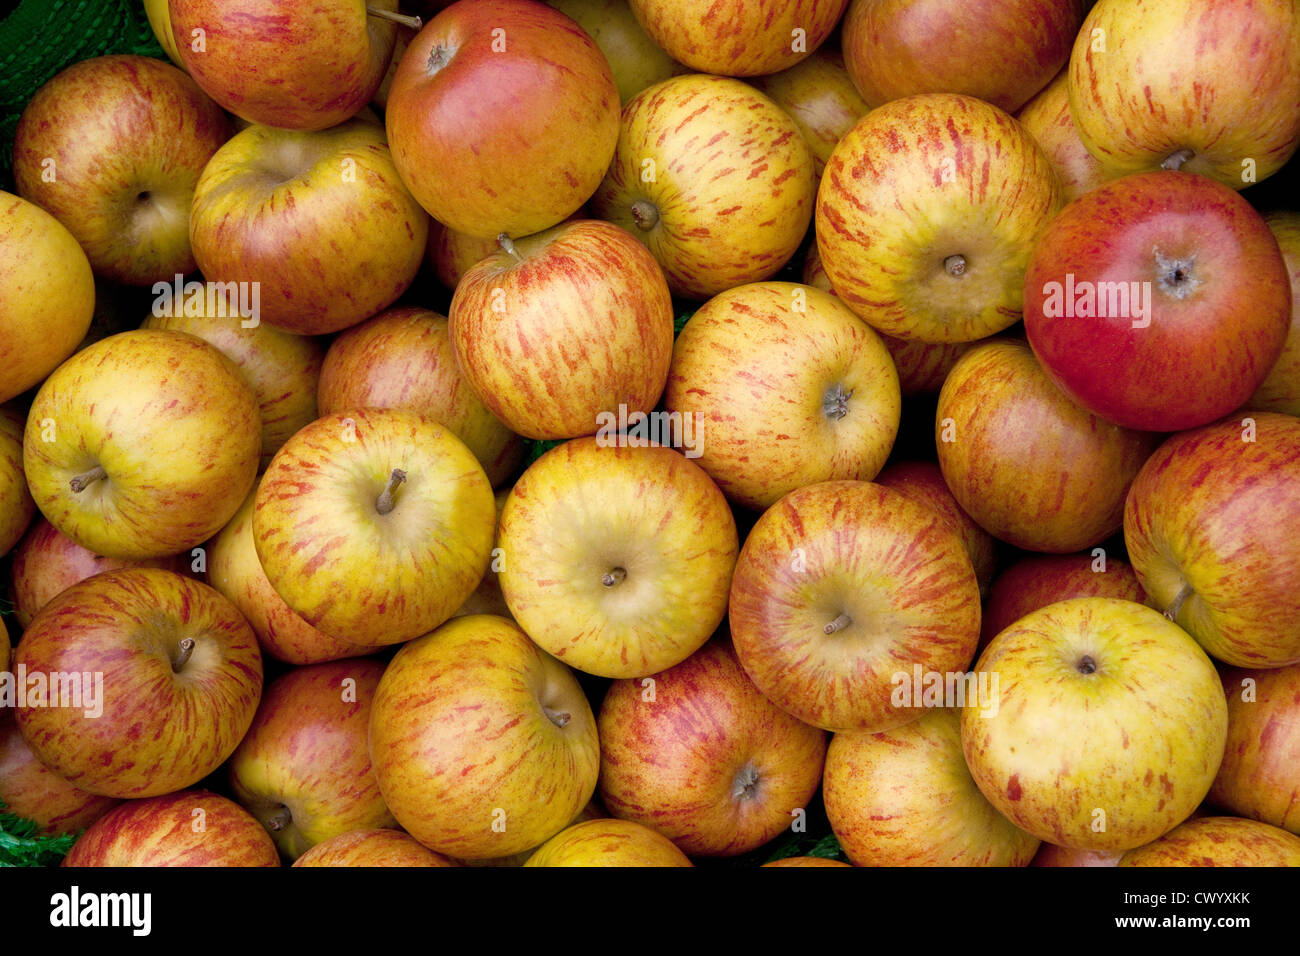 pile of apples stockfotos pile of apples bilder alamy. Black Bedroom Furniture Sets. Home Design Ideas